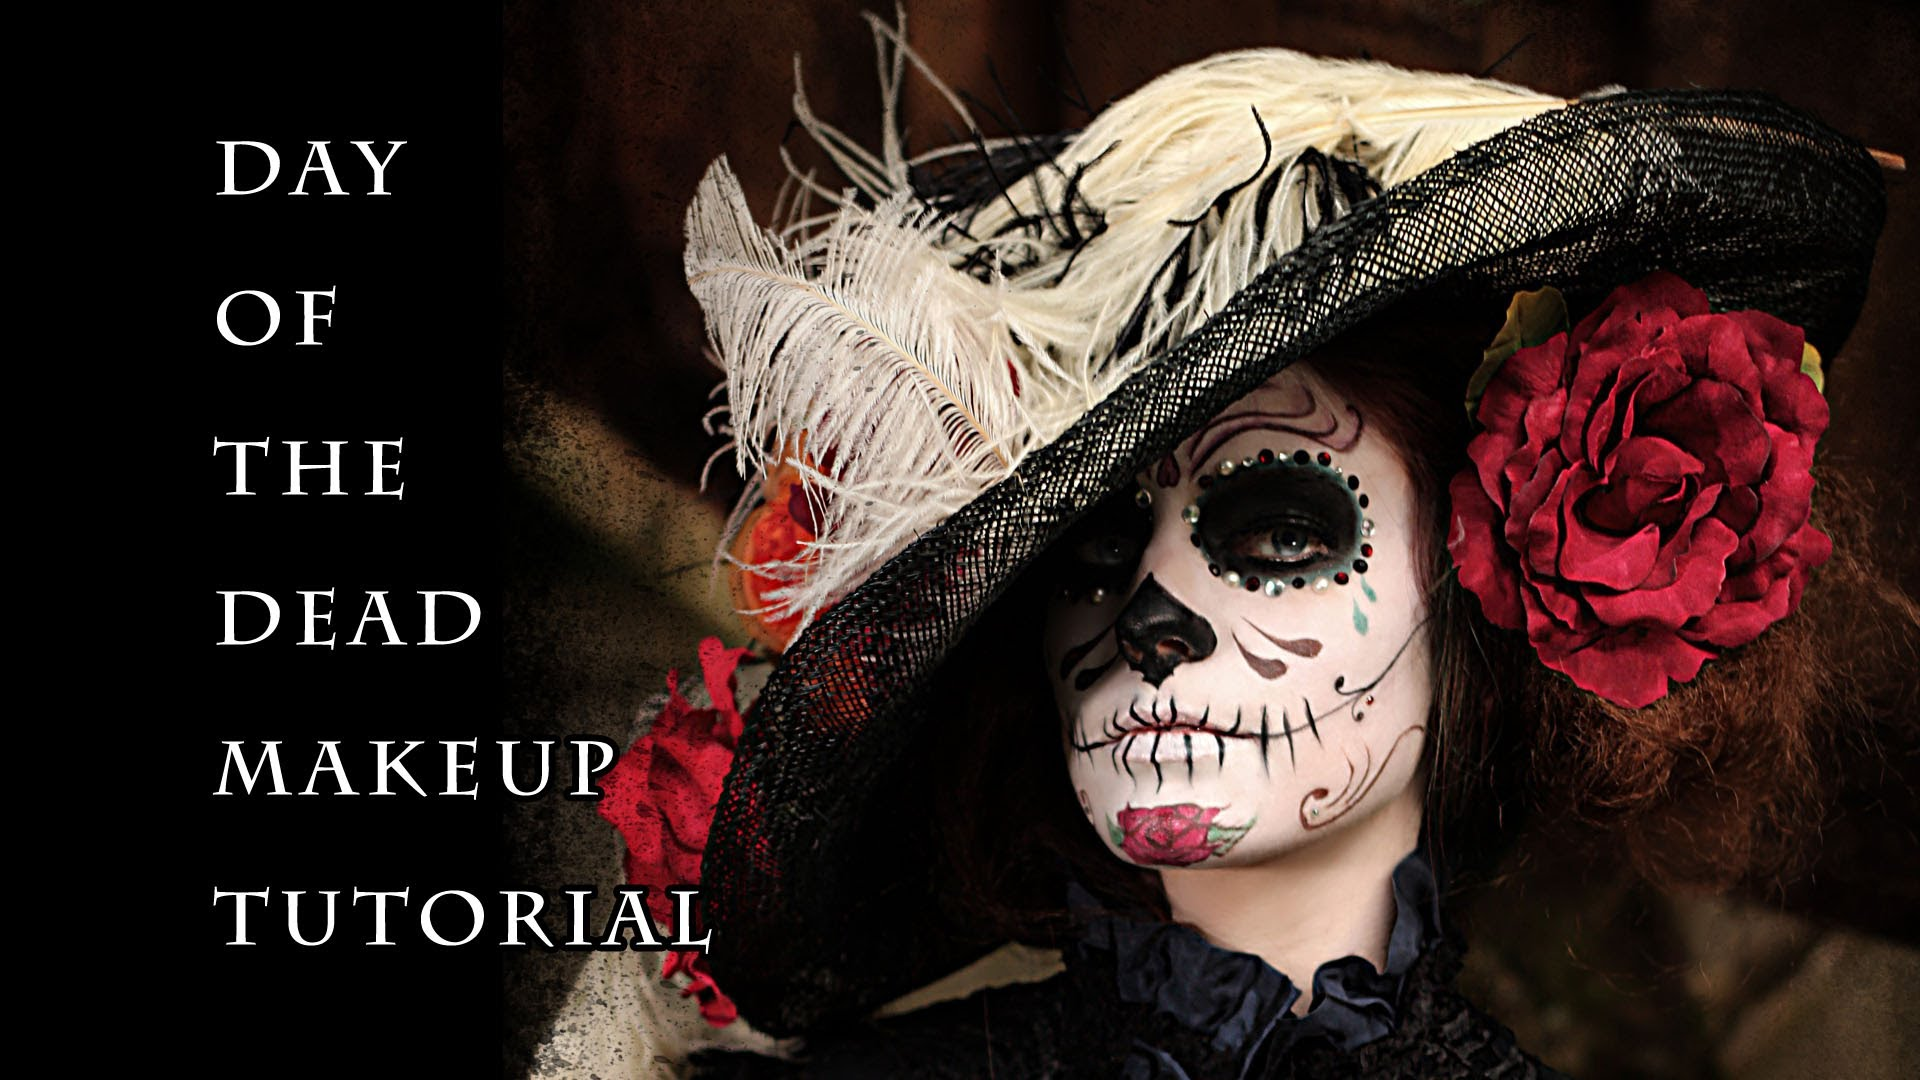 Day-of-the-Dead-Makeup-Tutorial-wallpaper-wp3604612-1